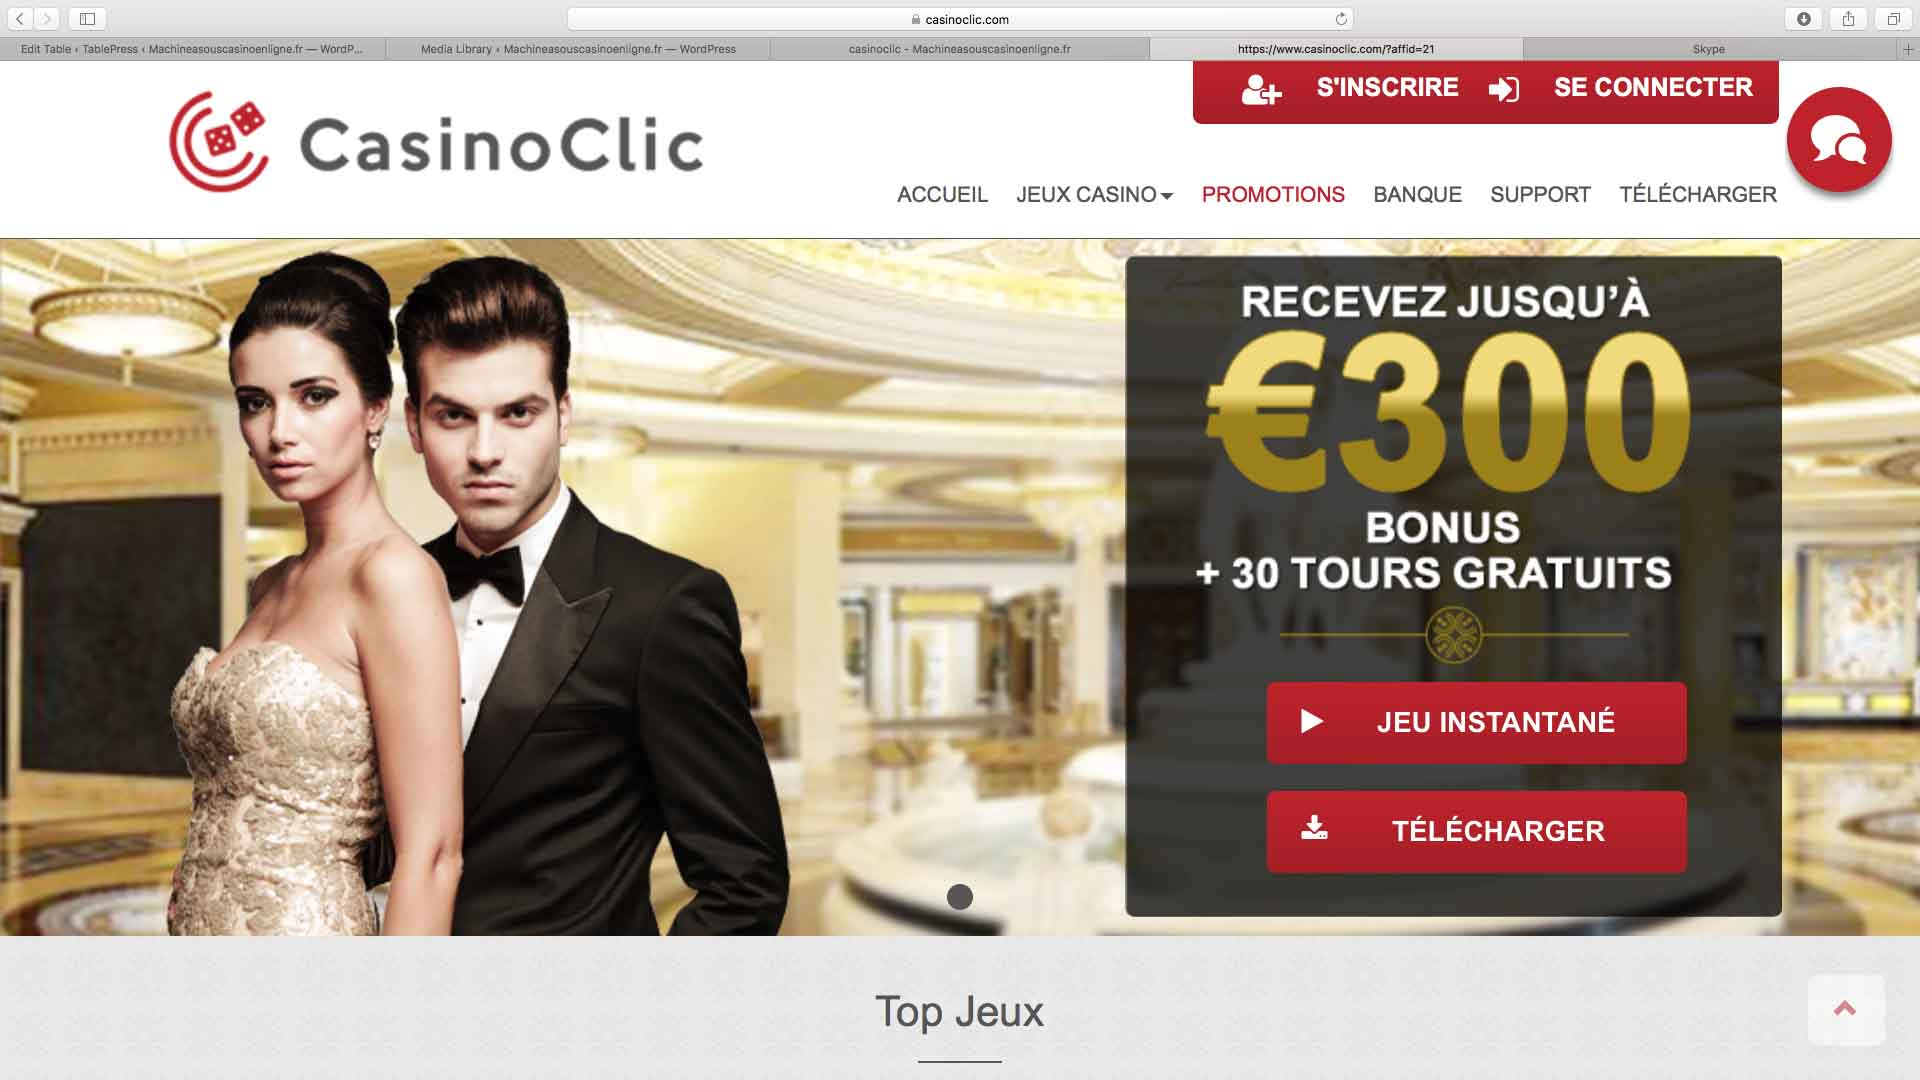 Deposit clic casino: How do I make a deposit?